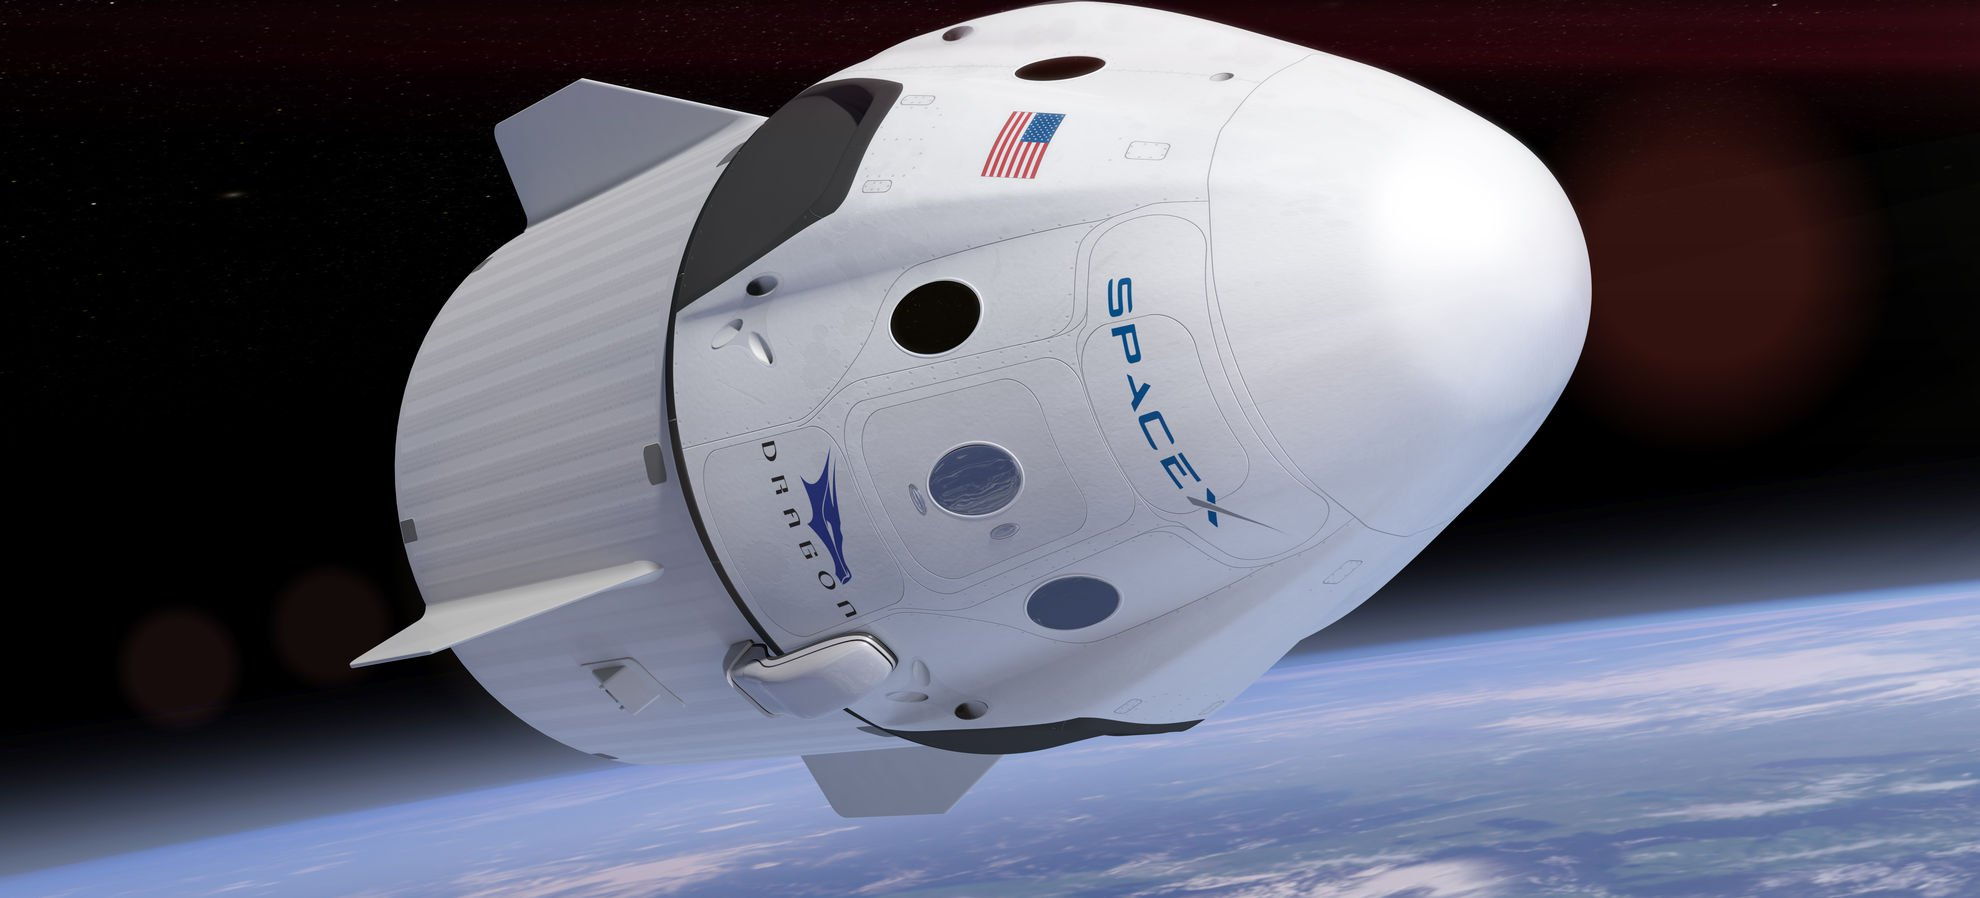 Boeing could Finance the campaign against SpaceX